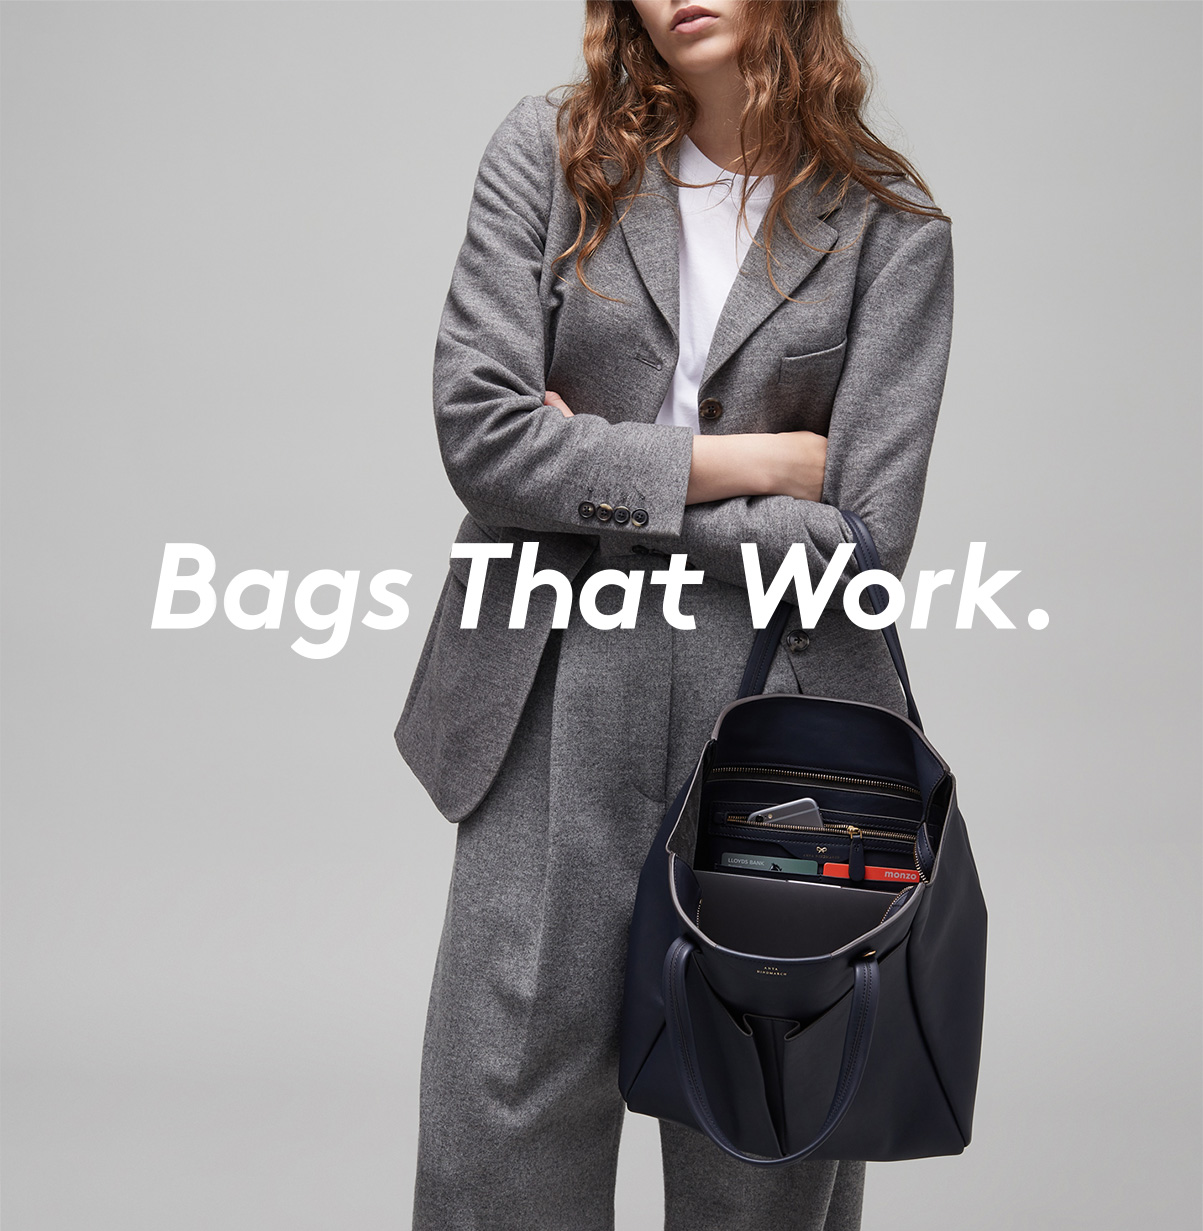 Bags that work launch AW18